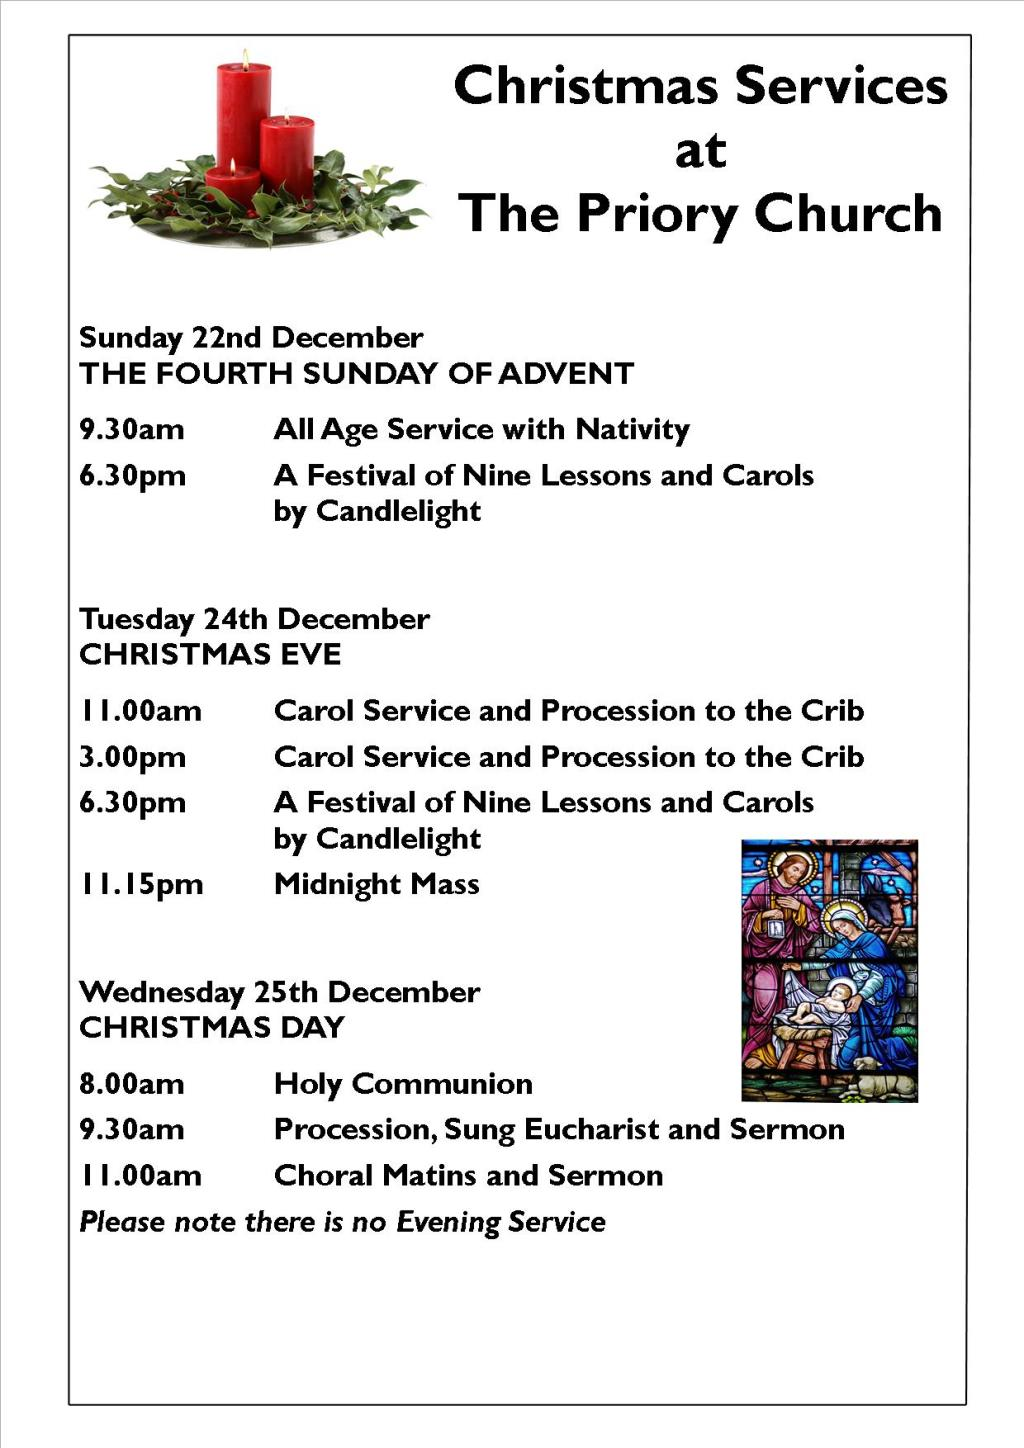 Christmas Services at The Priory Christchurch